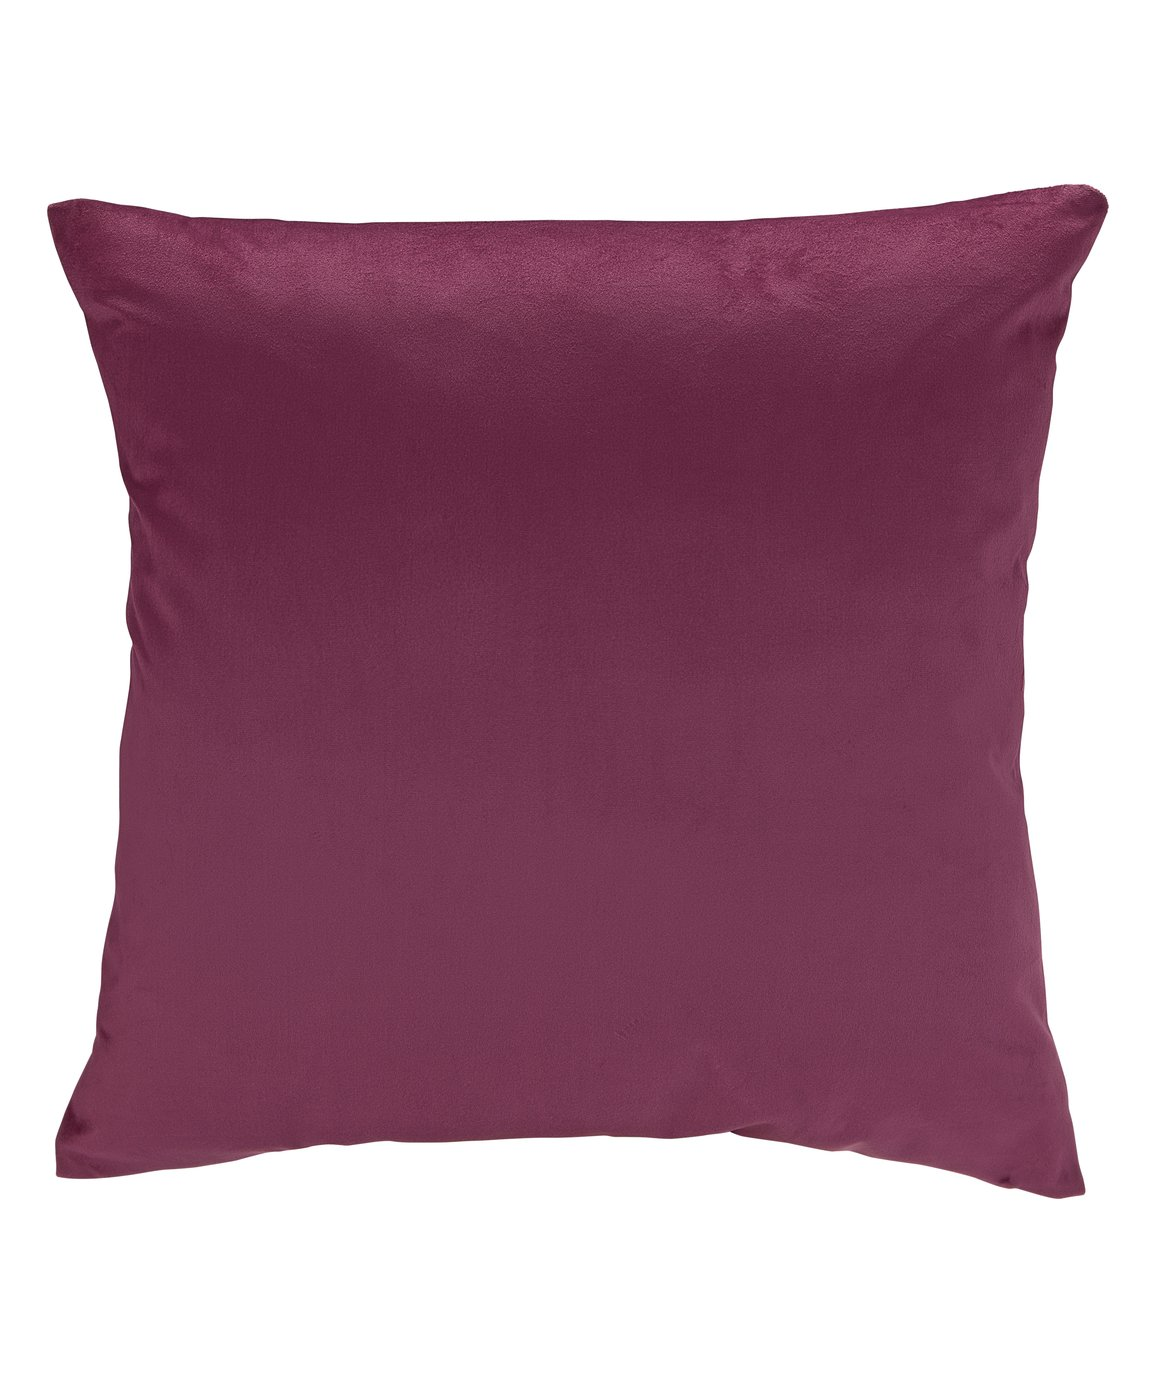 Argos Home Berry Christmas Velvet Cushion